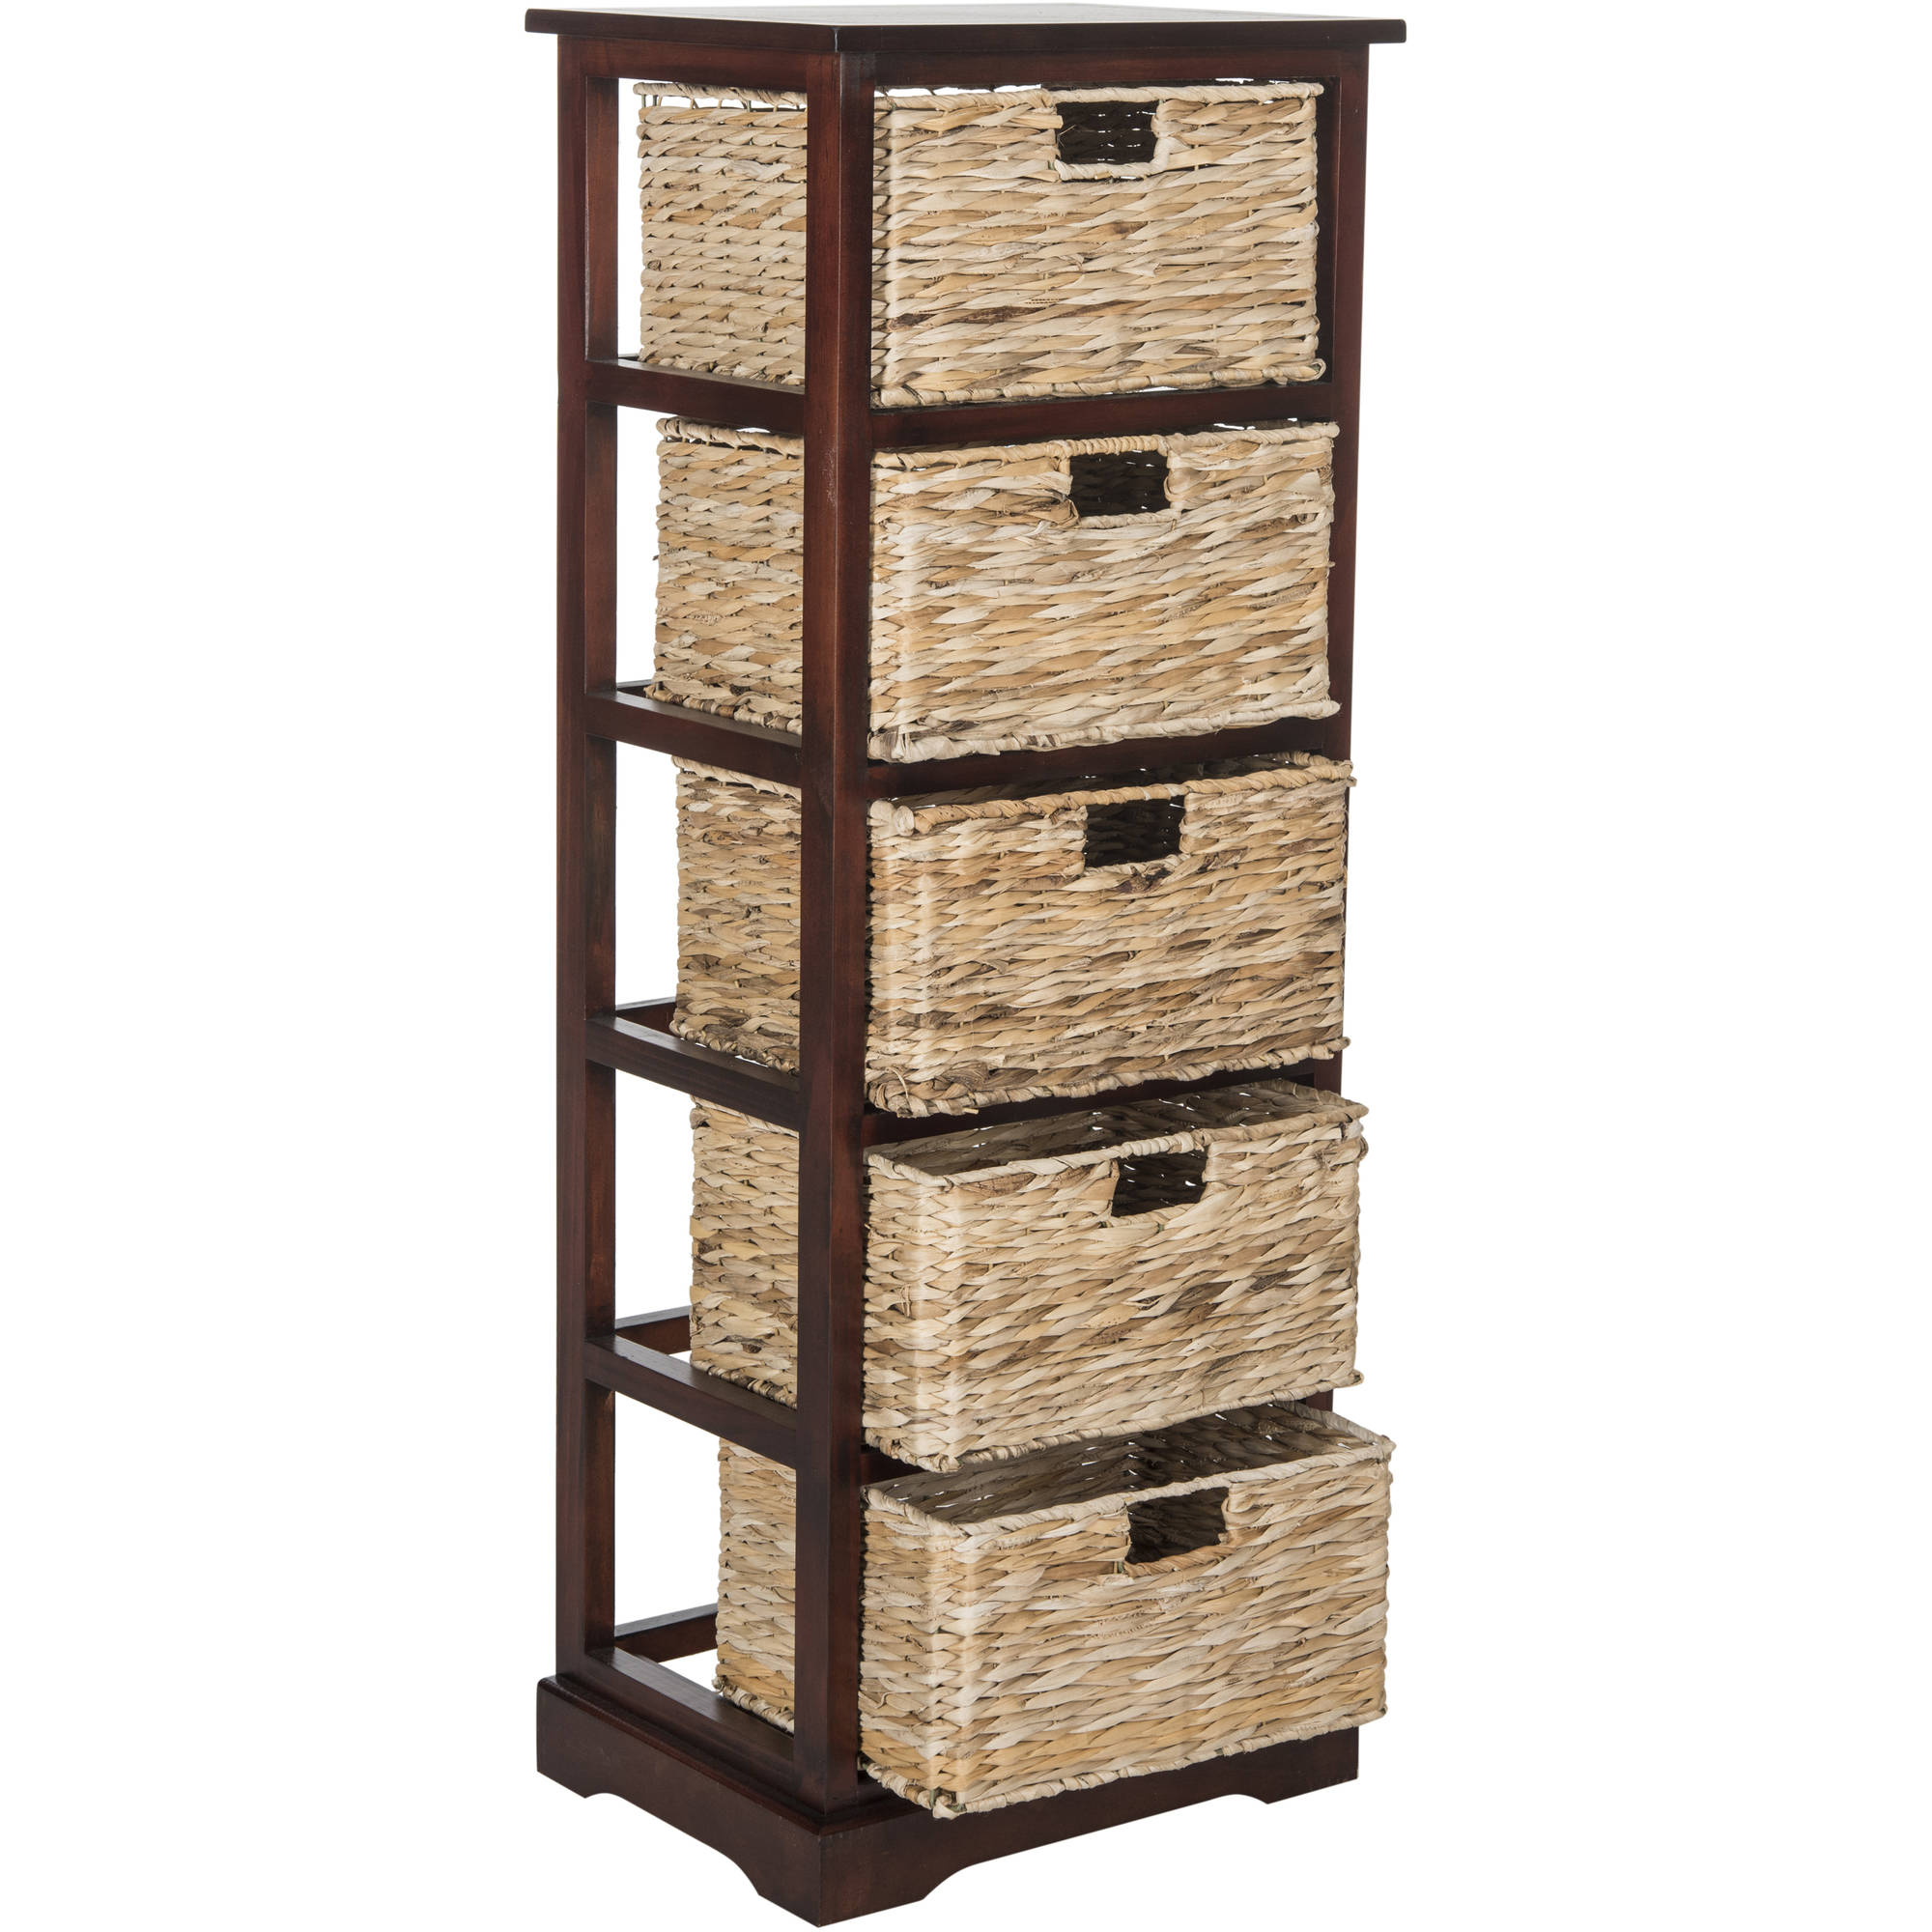 Superior Safavieh Vedette 5 Wicker Basket Storage Tower   Walmart.com